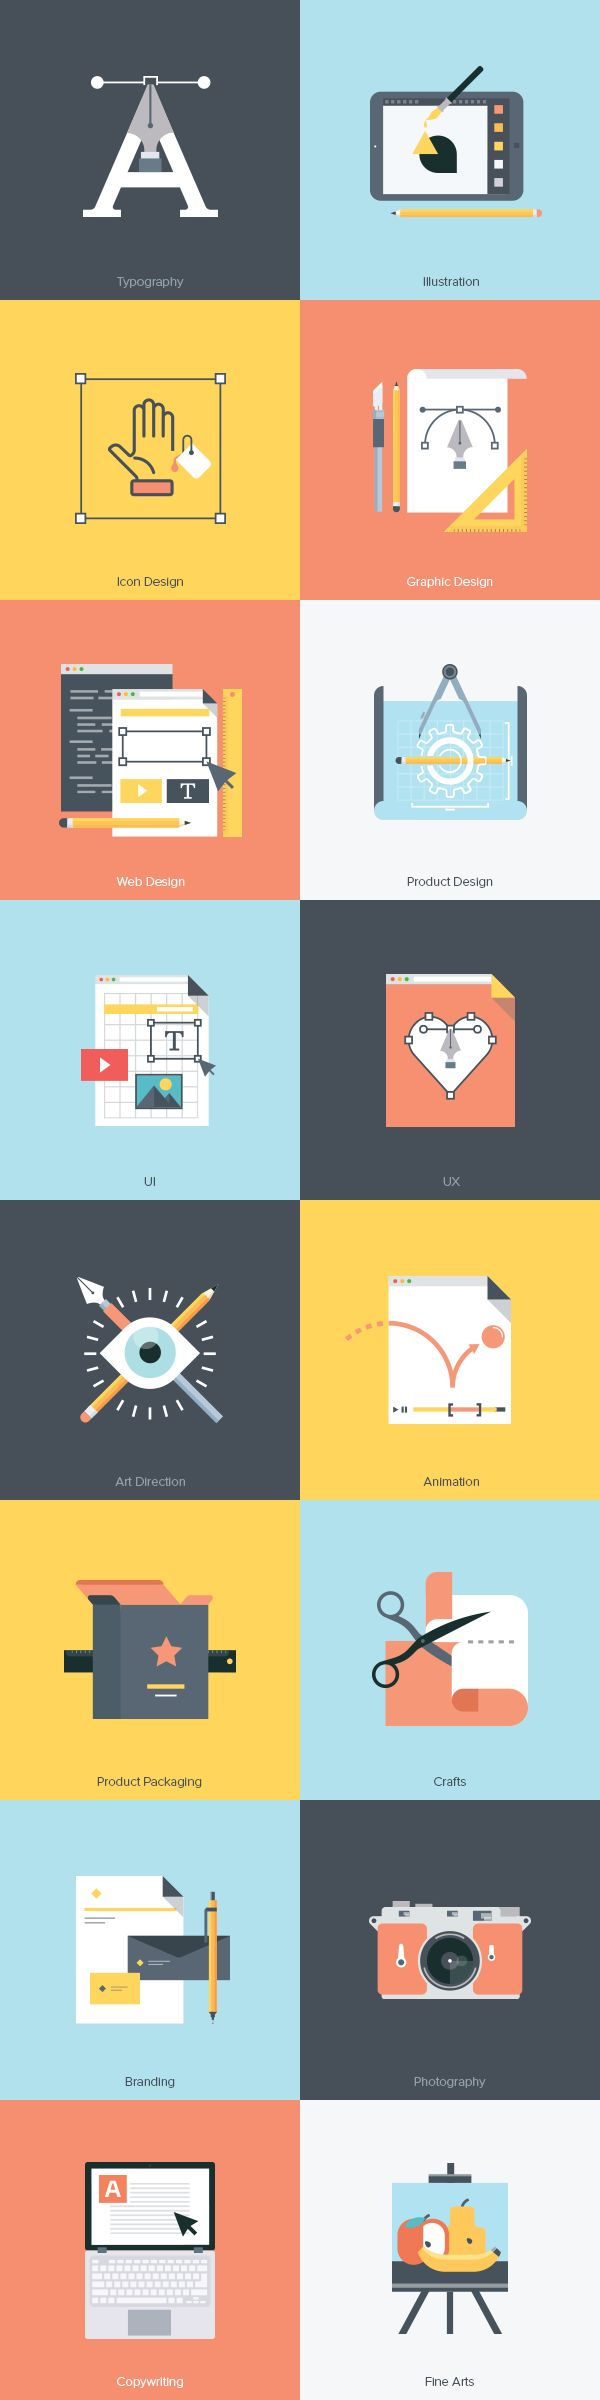 20 Free and Versatile #Icon Packs to Add to your Toolkit! #iconpack #freedownload